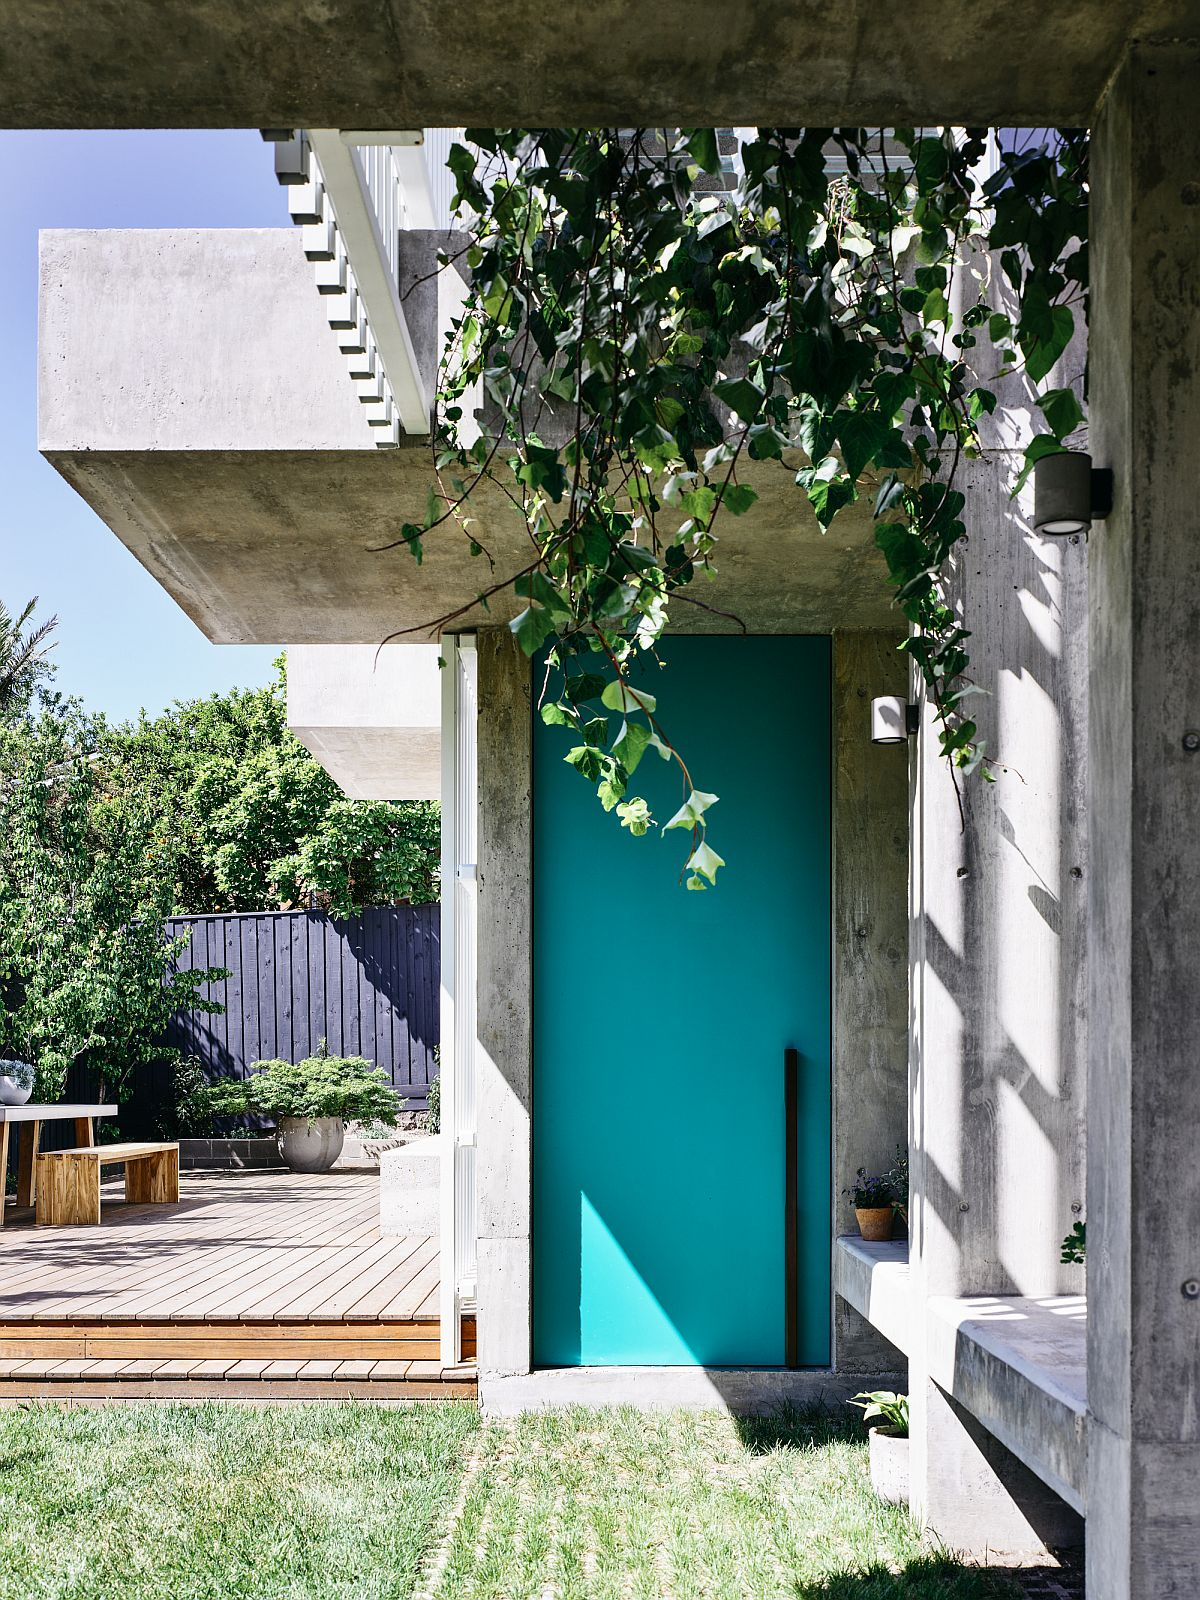 Hanging plants and grasscrete welcome you at this modern Kew Residence